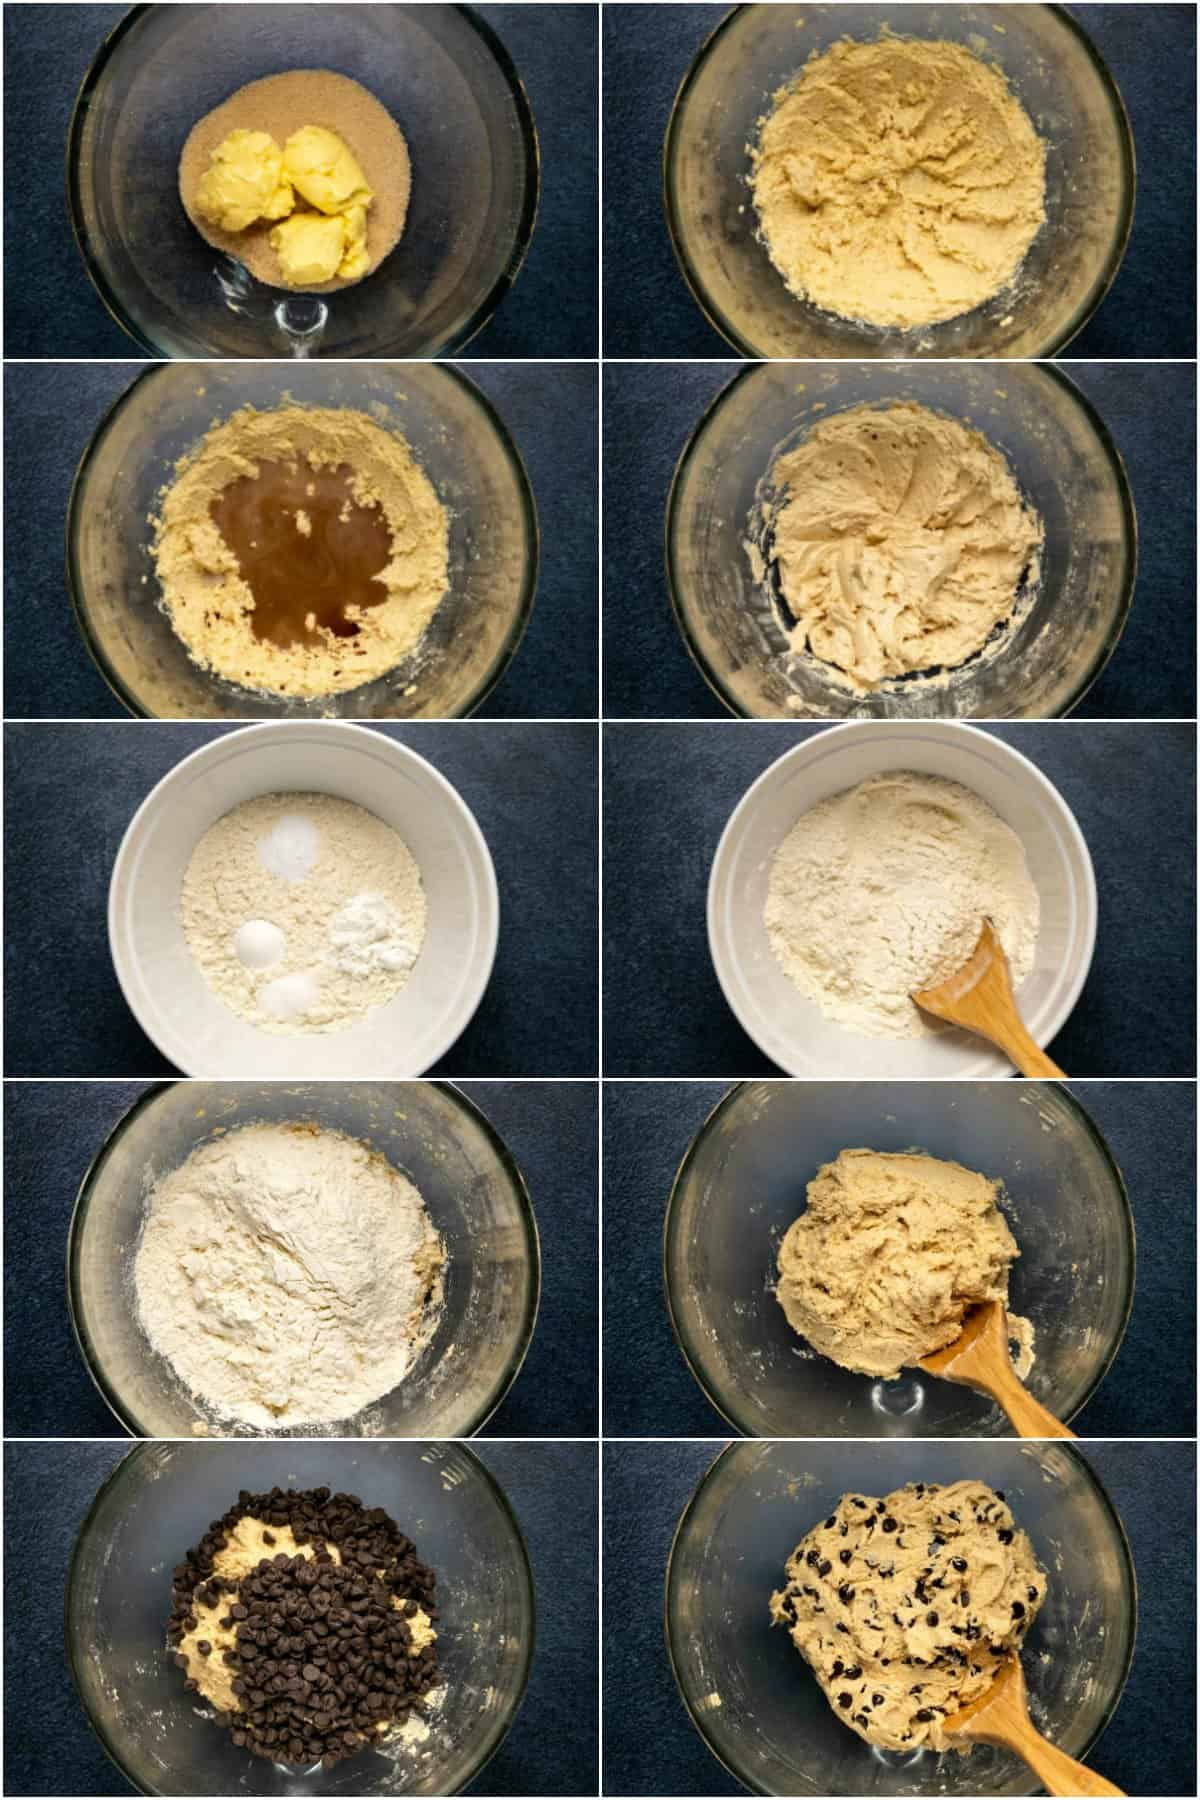 Step by step process photo collage of making the cookie dough for vegan chocolate chip cookies.